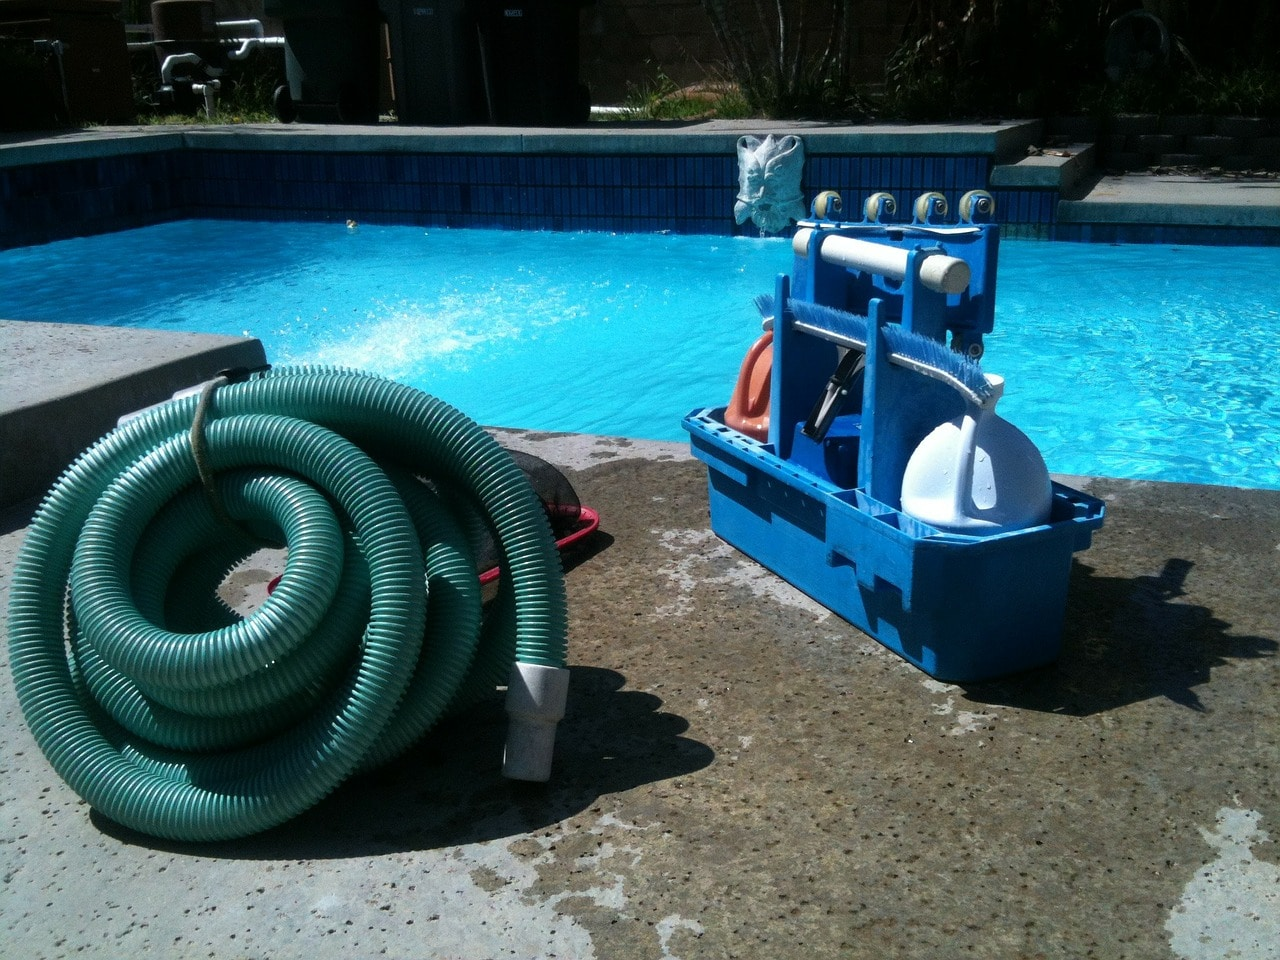 Pool Pump Installation Made Easy with Professionals